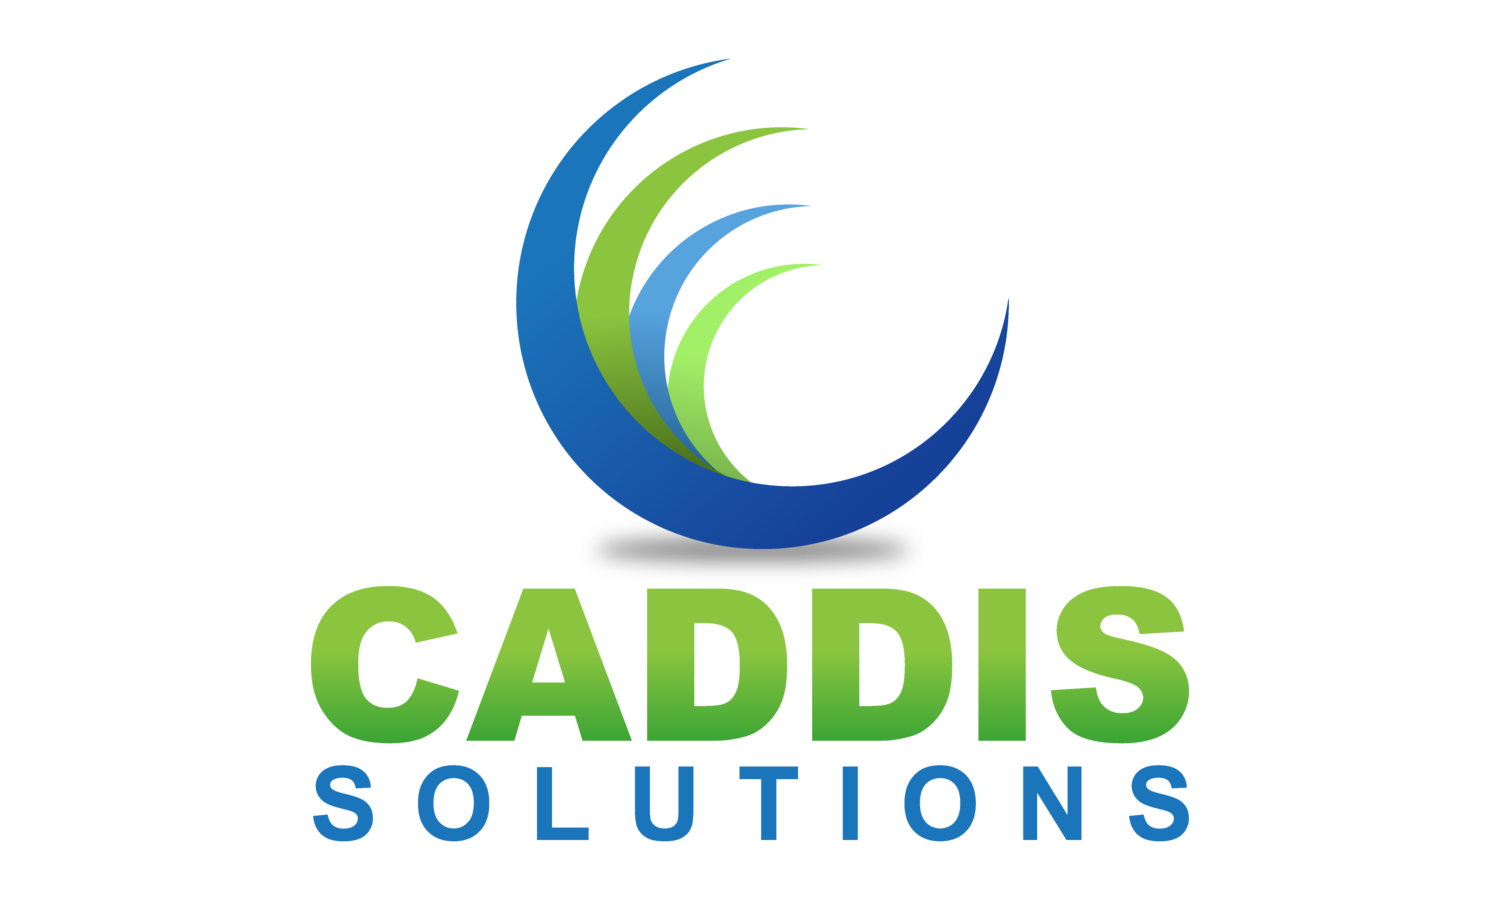 CaddisSolutions.com